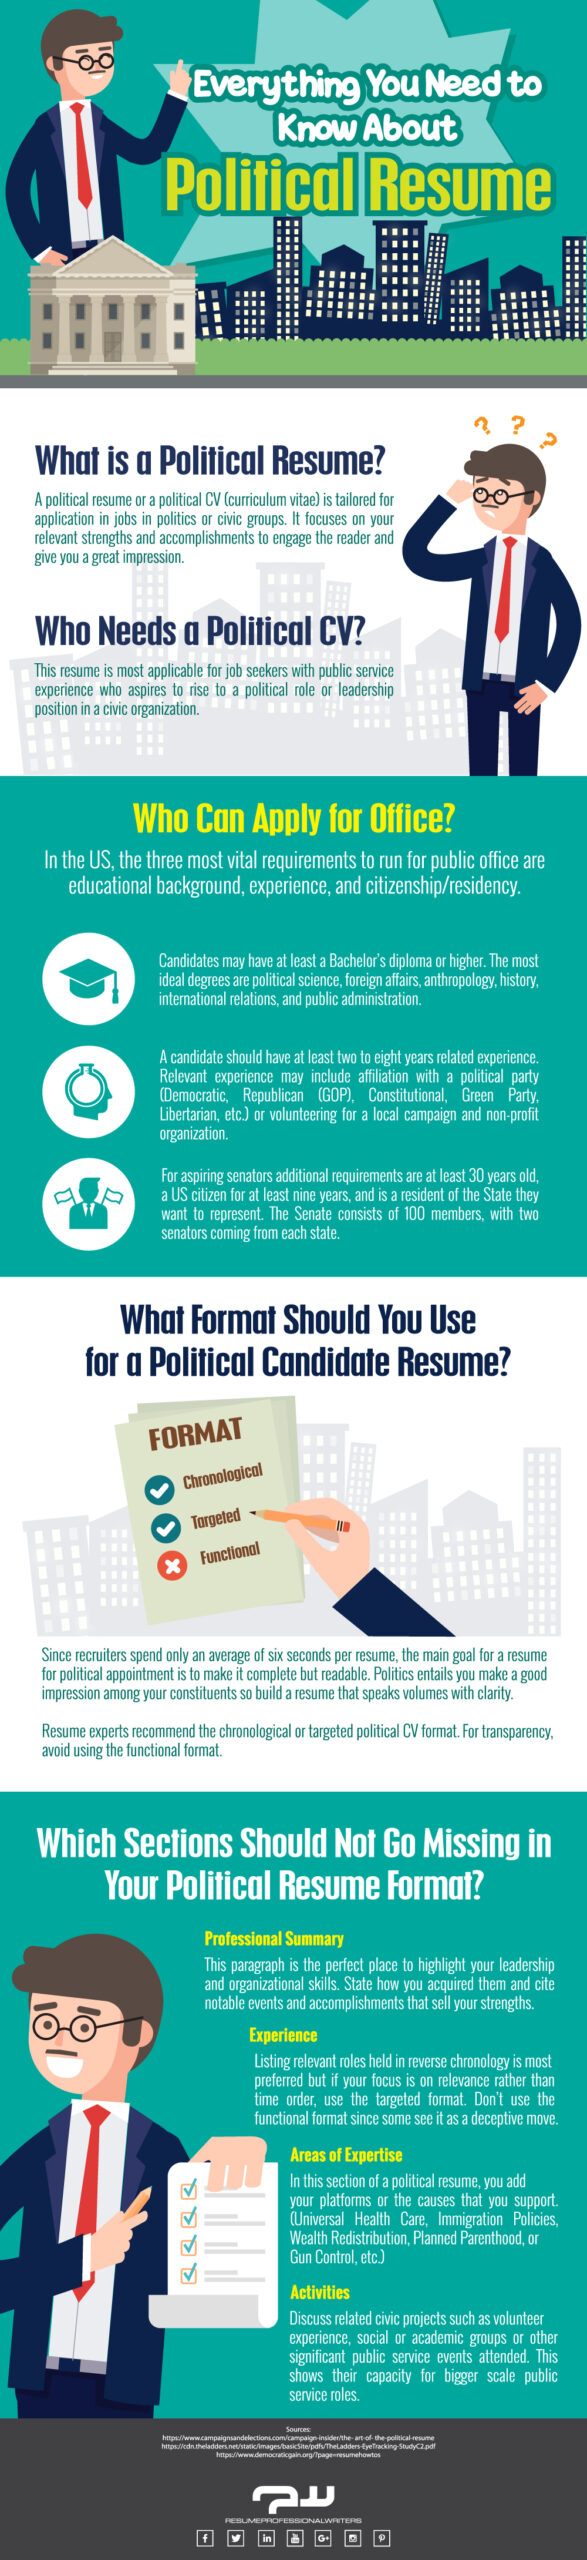 everything you need to know about political resume visually candidate sample security Resume Political Candidate Resume Sample India